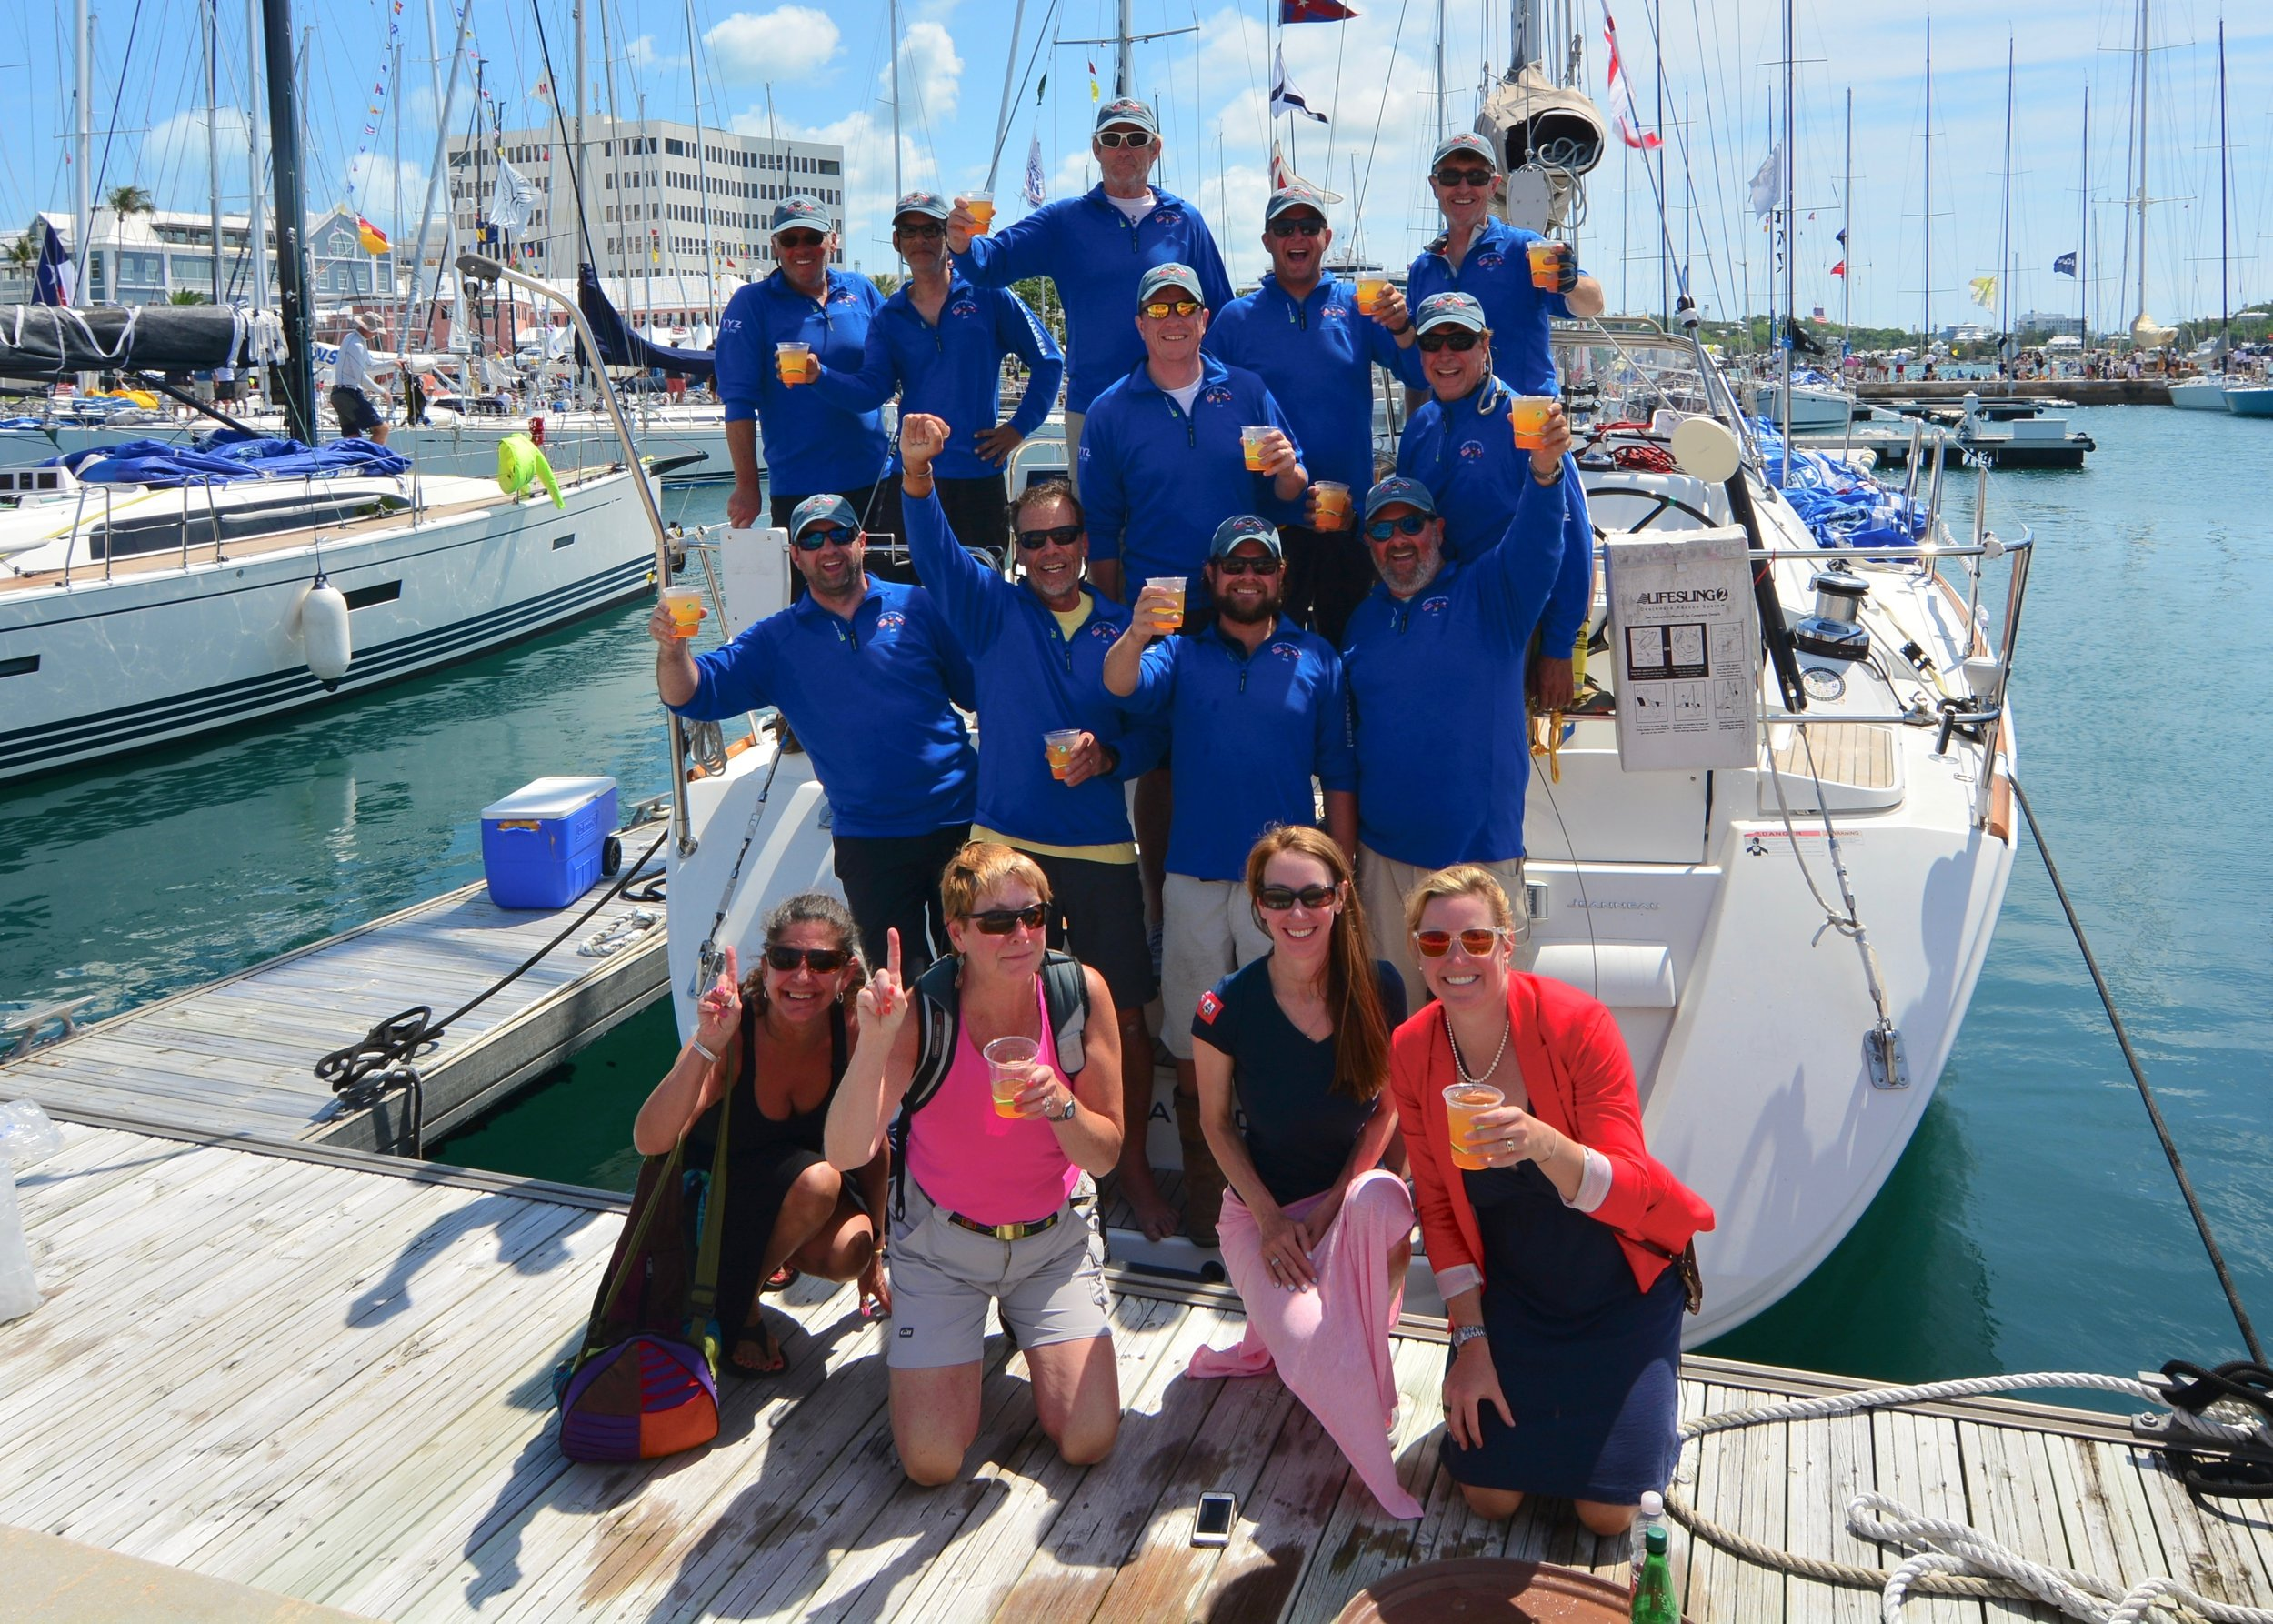 yyz Celebrates victory in the newport bermuda race